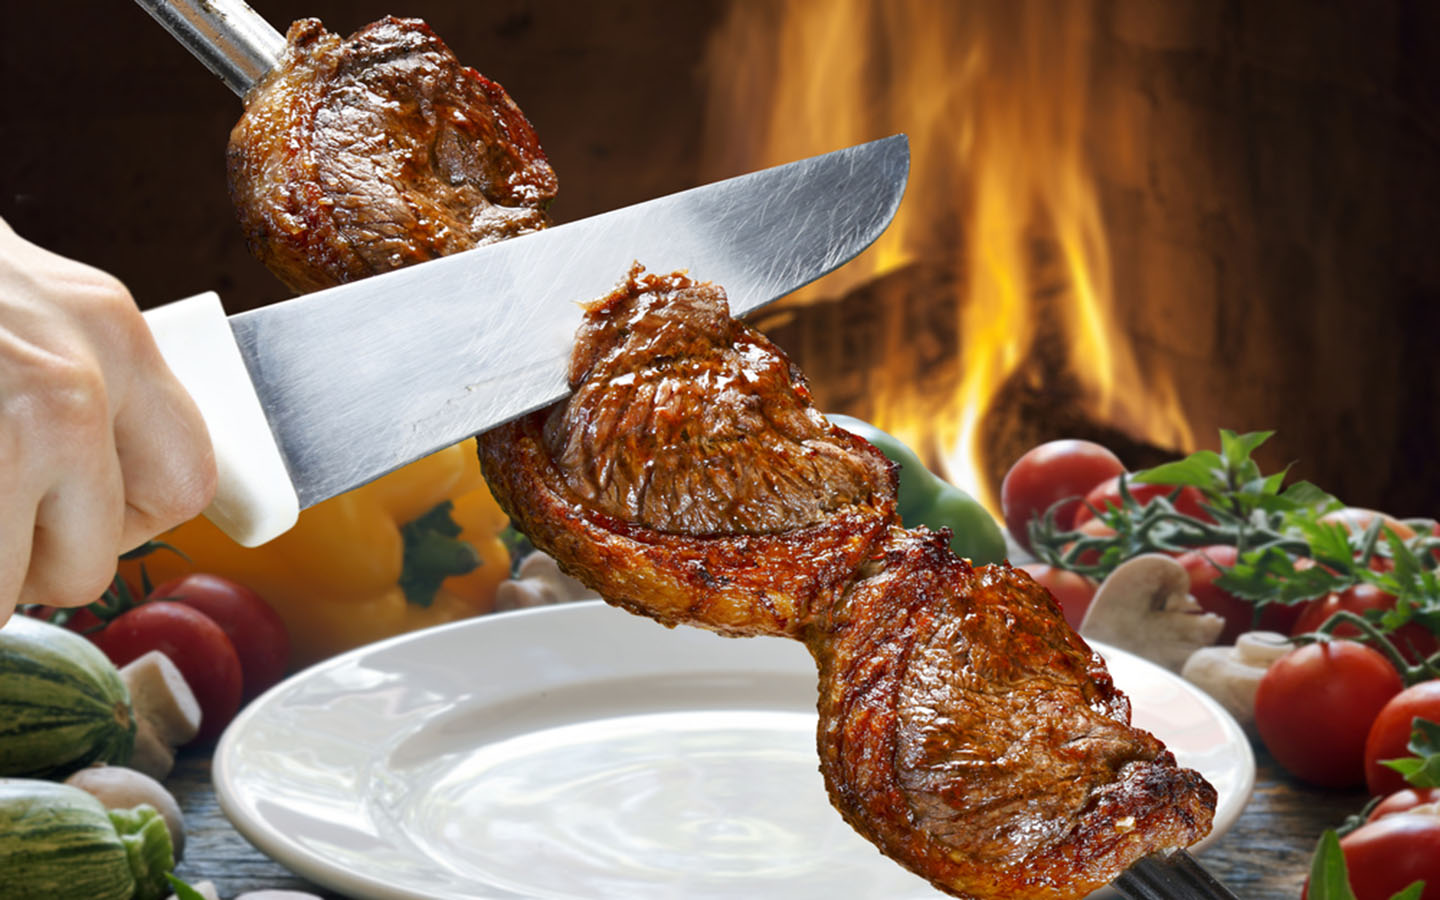 Brazilian BBQ on a grill available at restaurants in Deira